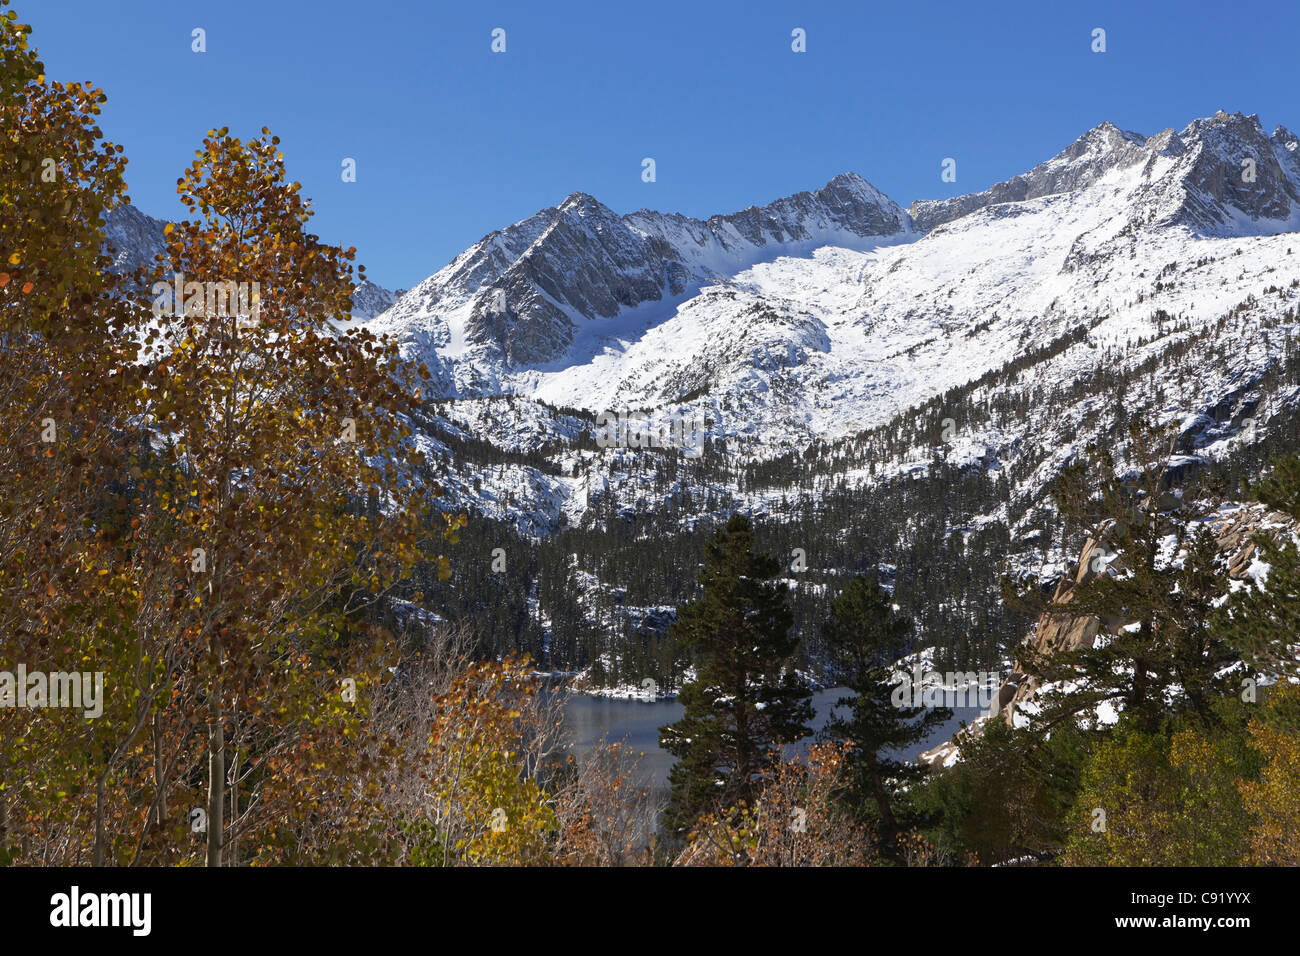 Early autumn snow in Sierra Nevada mountains, California - Stock Image